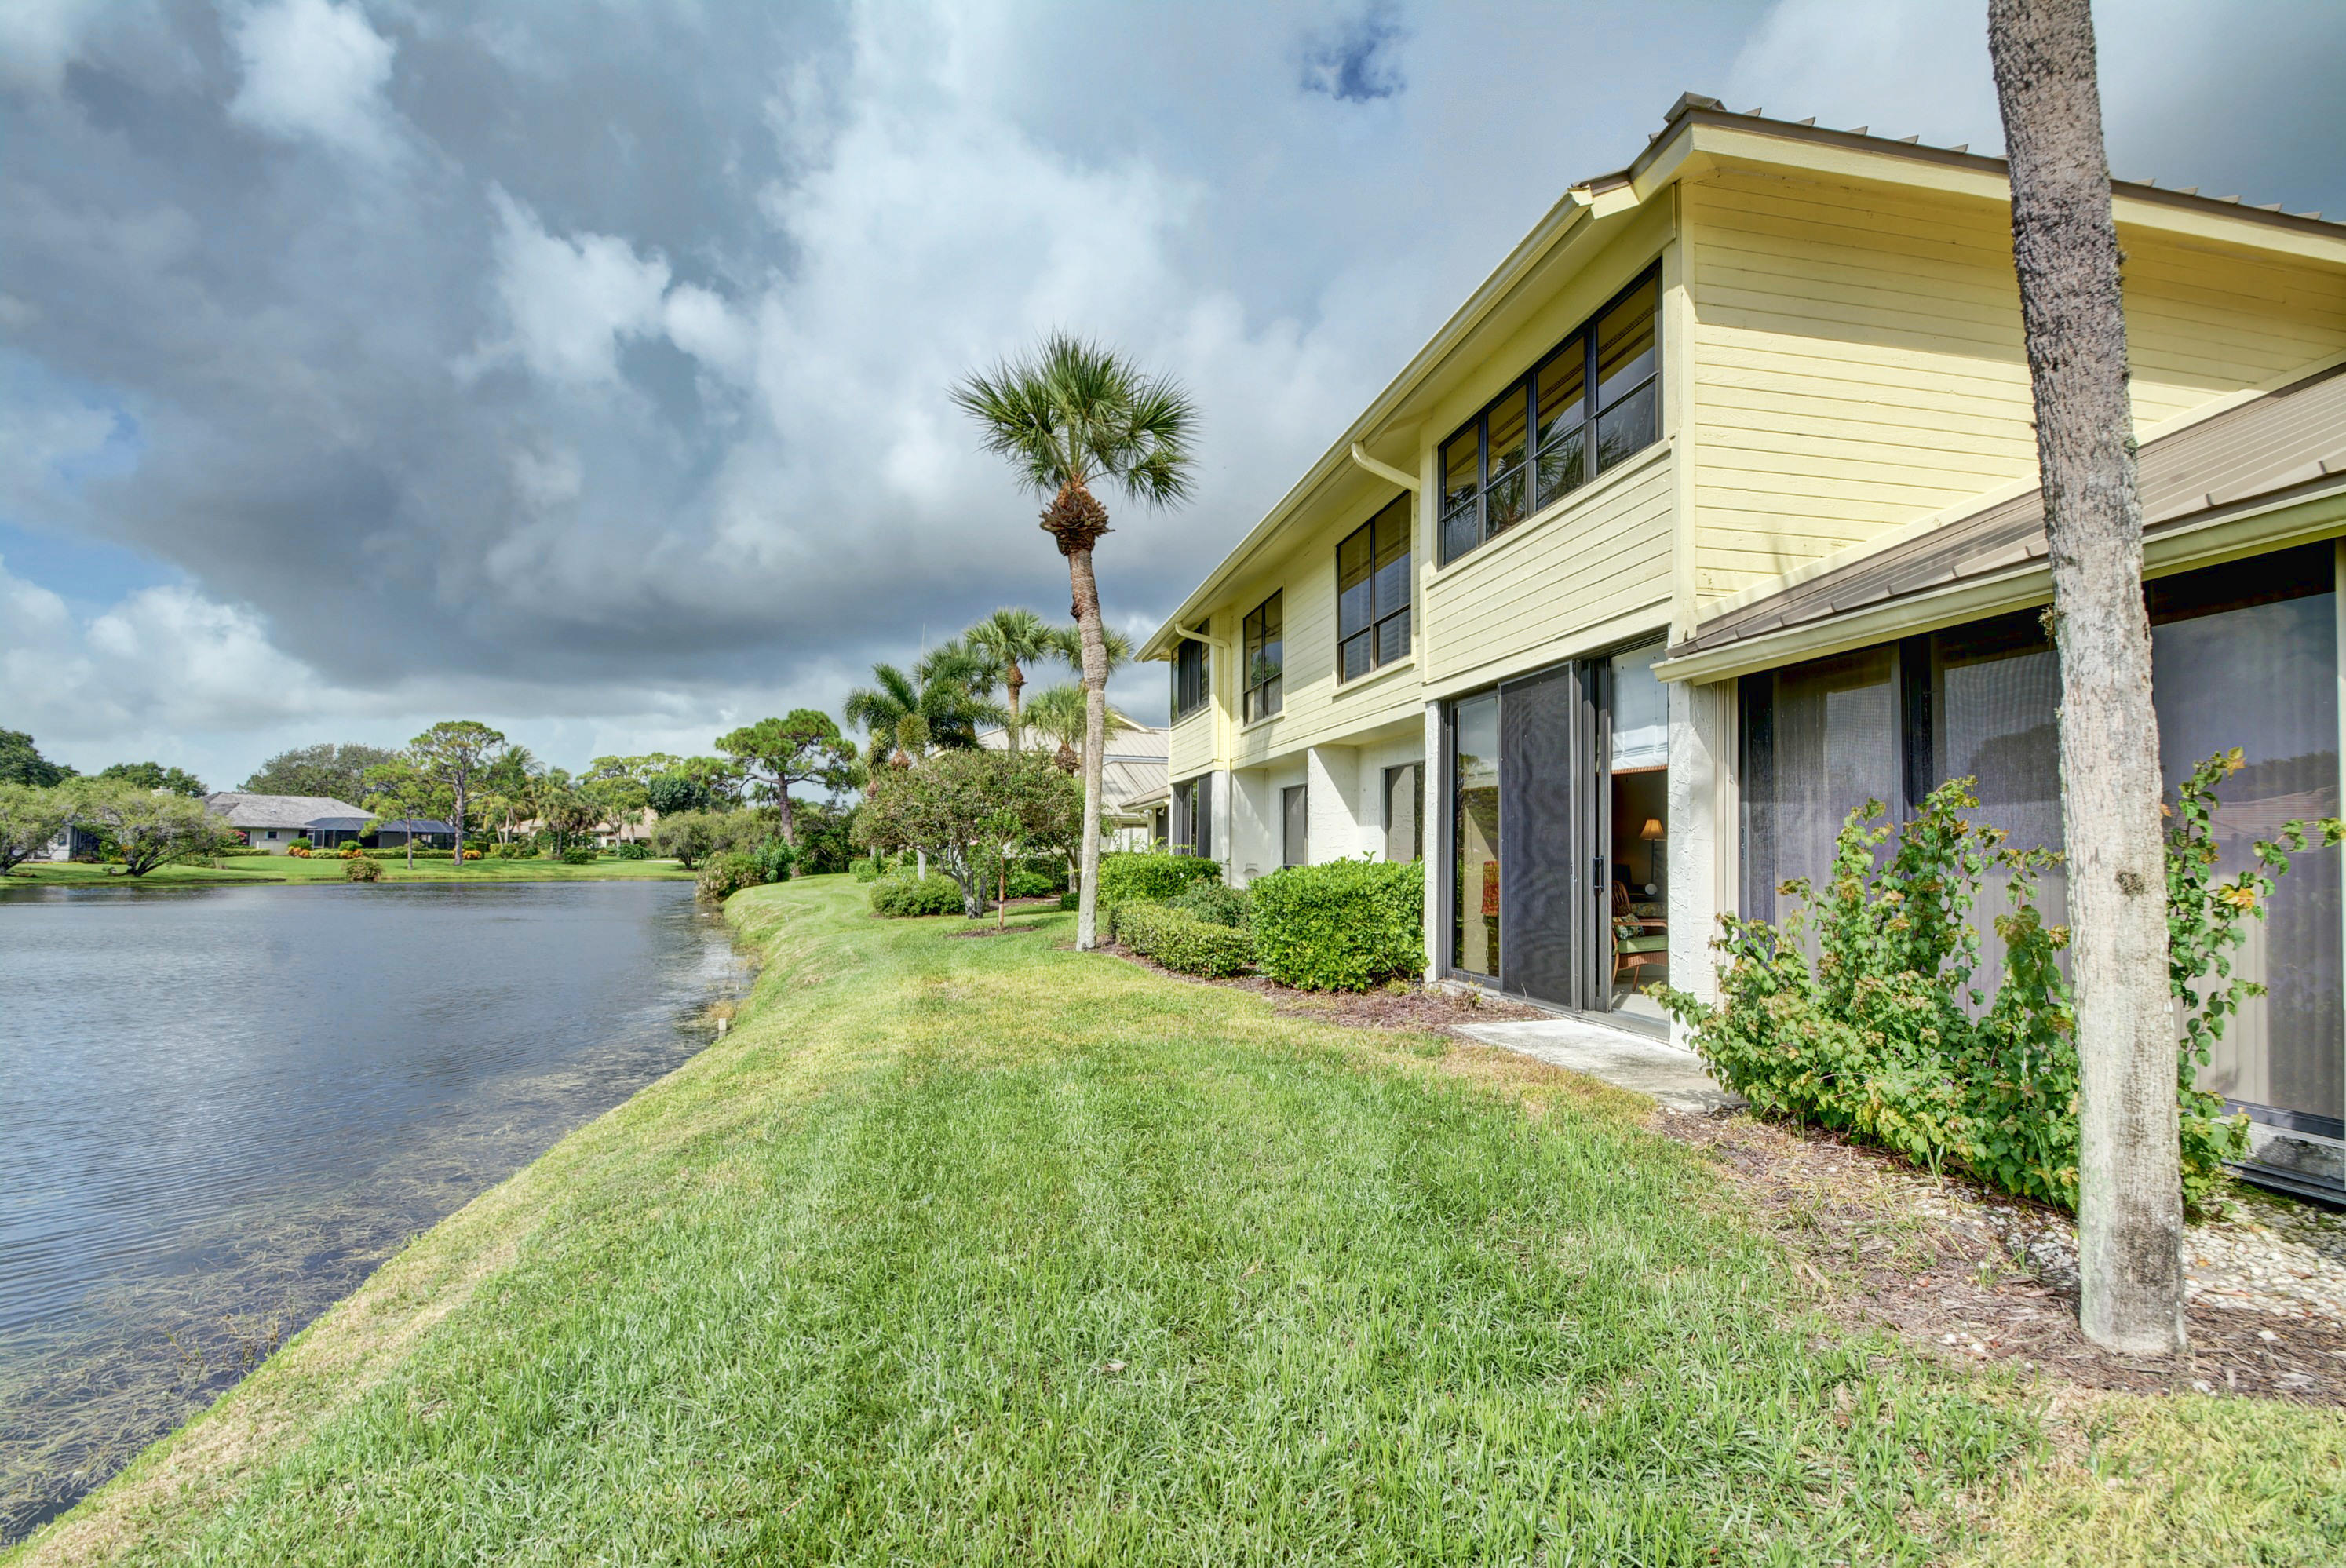 5606 Foxcross Place, Stuart, Florida 34997, 3 Bedrooms Bedrooms, ,2.1 BathroomsBathrooms,A,Townhouse,Foxcross,RX-10452978